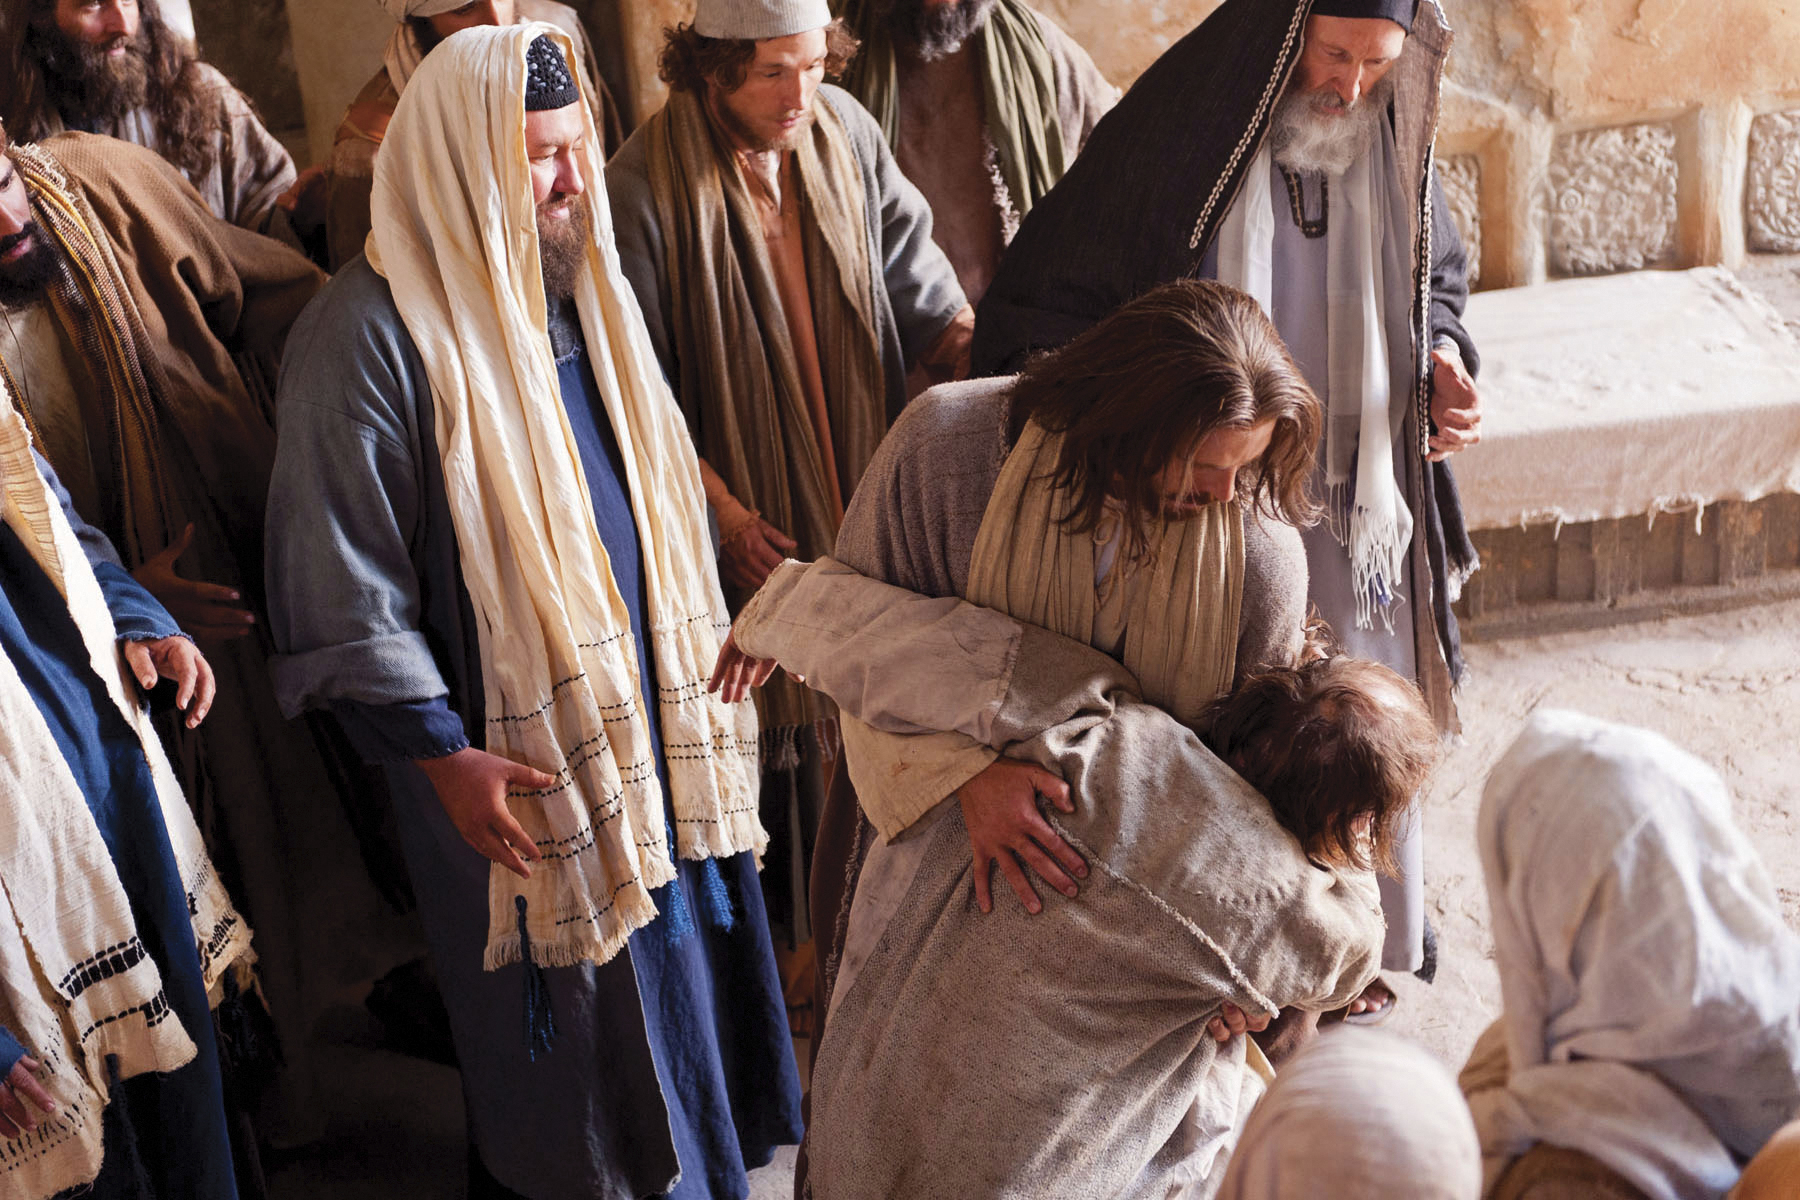 Jesus commands the unclean spirit to leave the man.